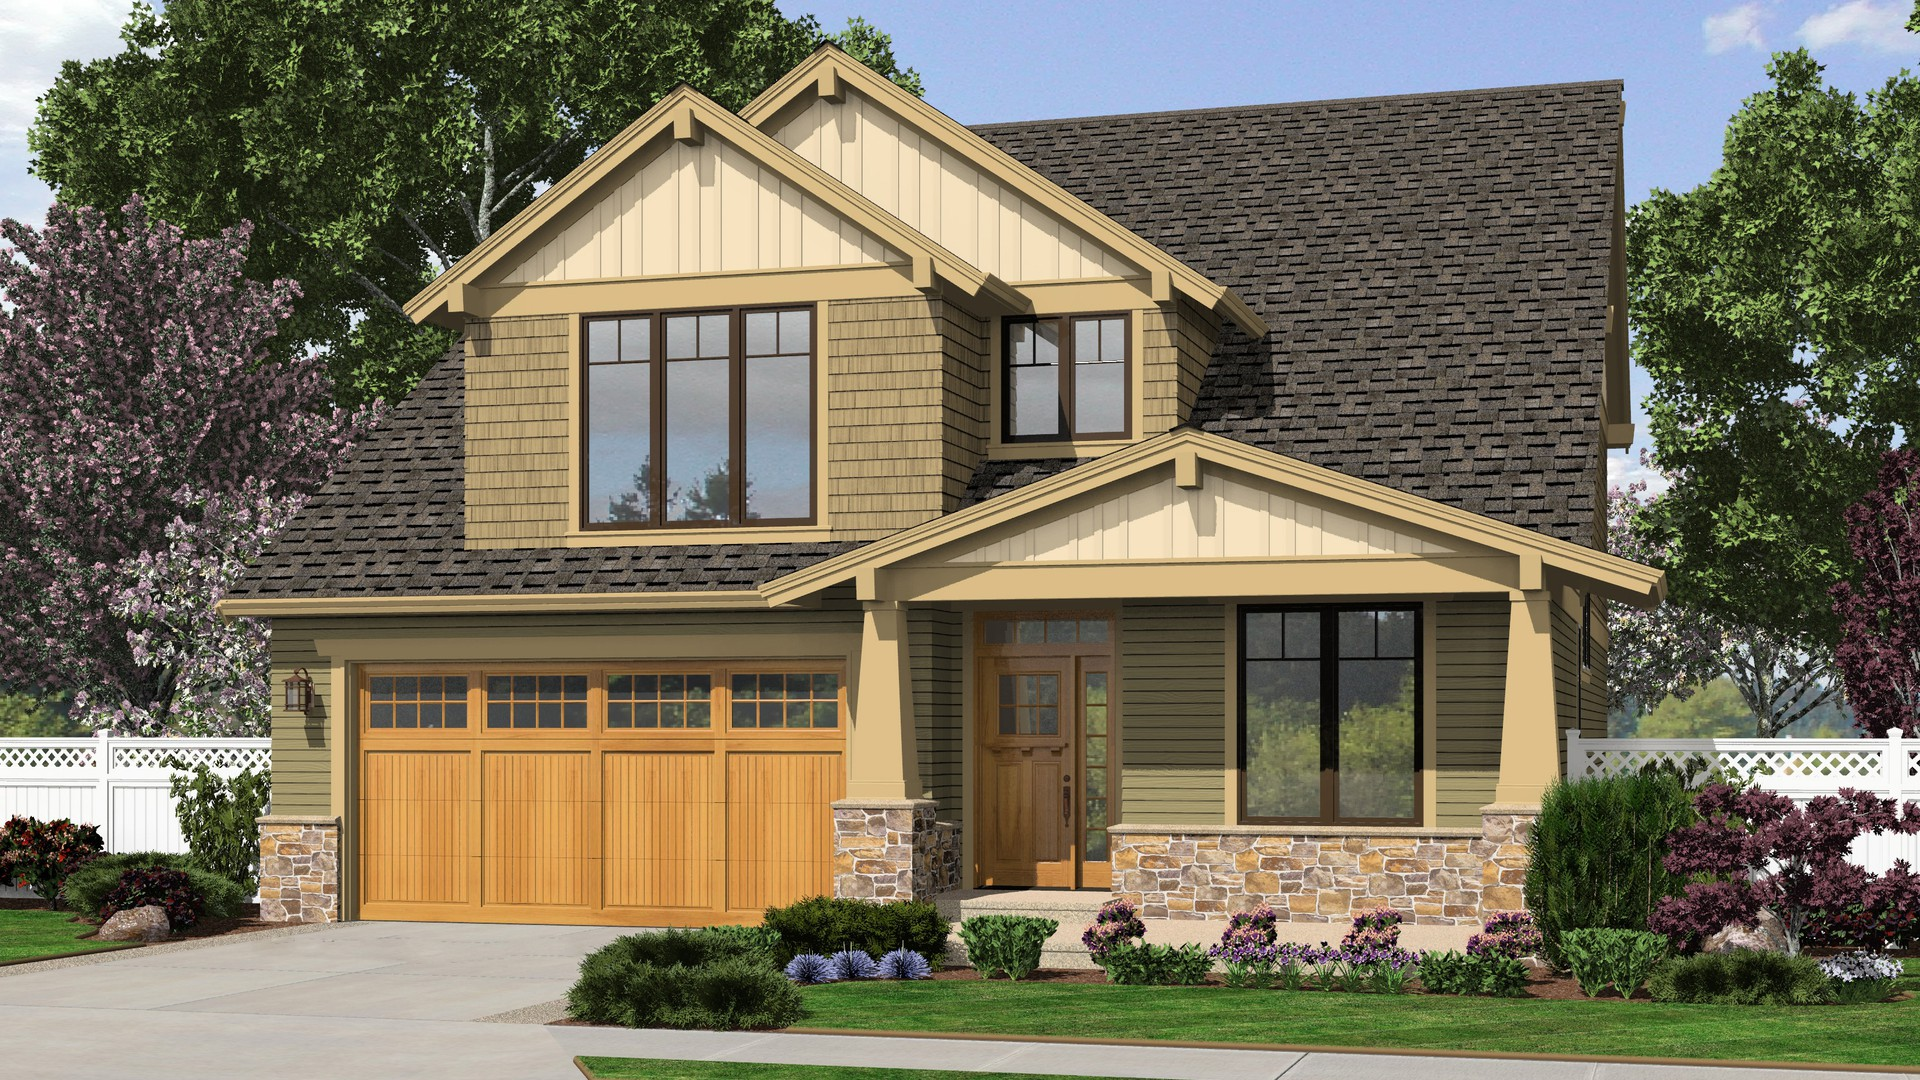 House plan details plan b2230cd the olympia for Canadian house plans with basements